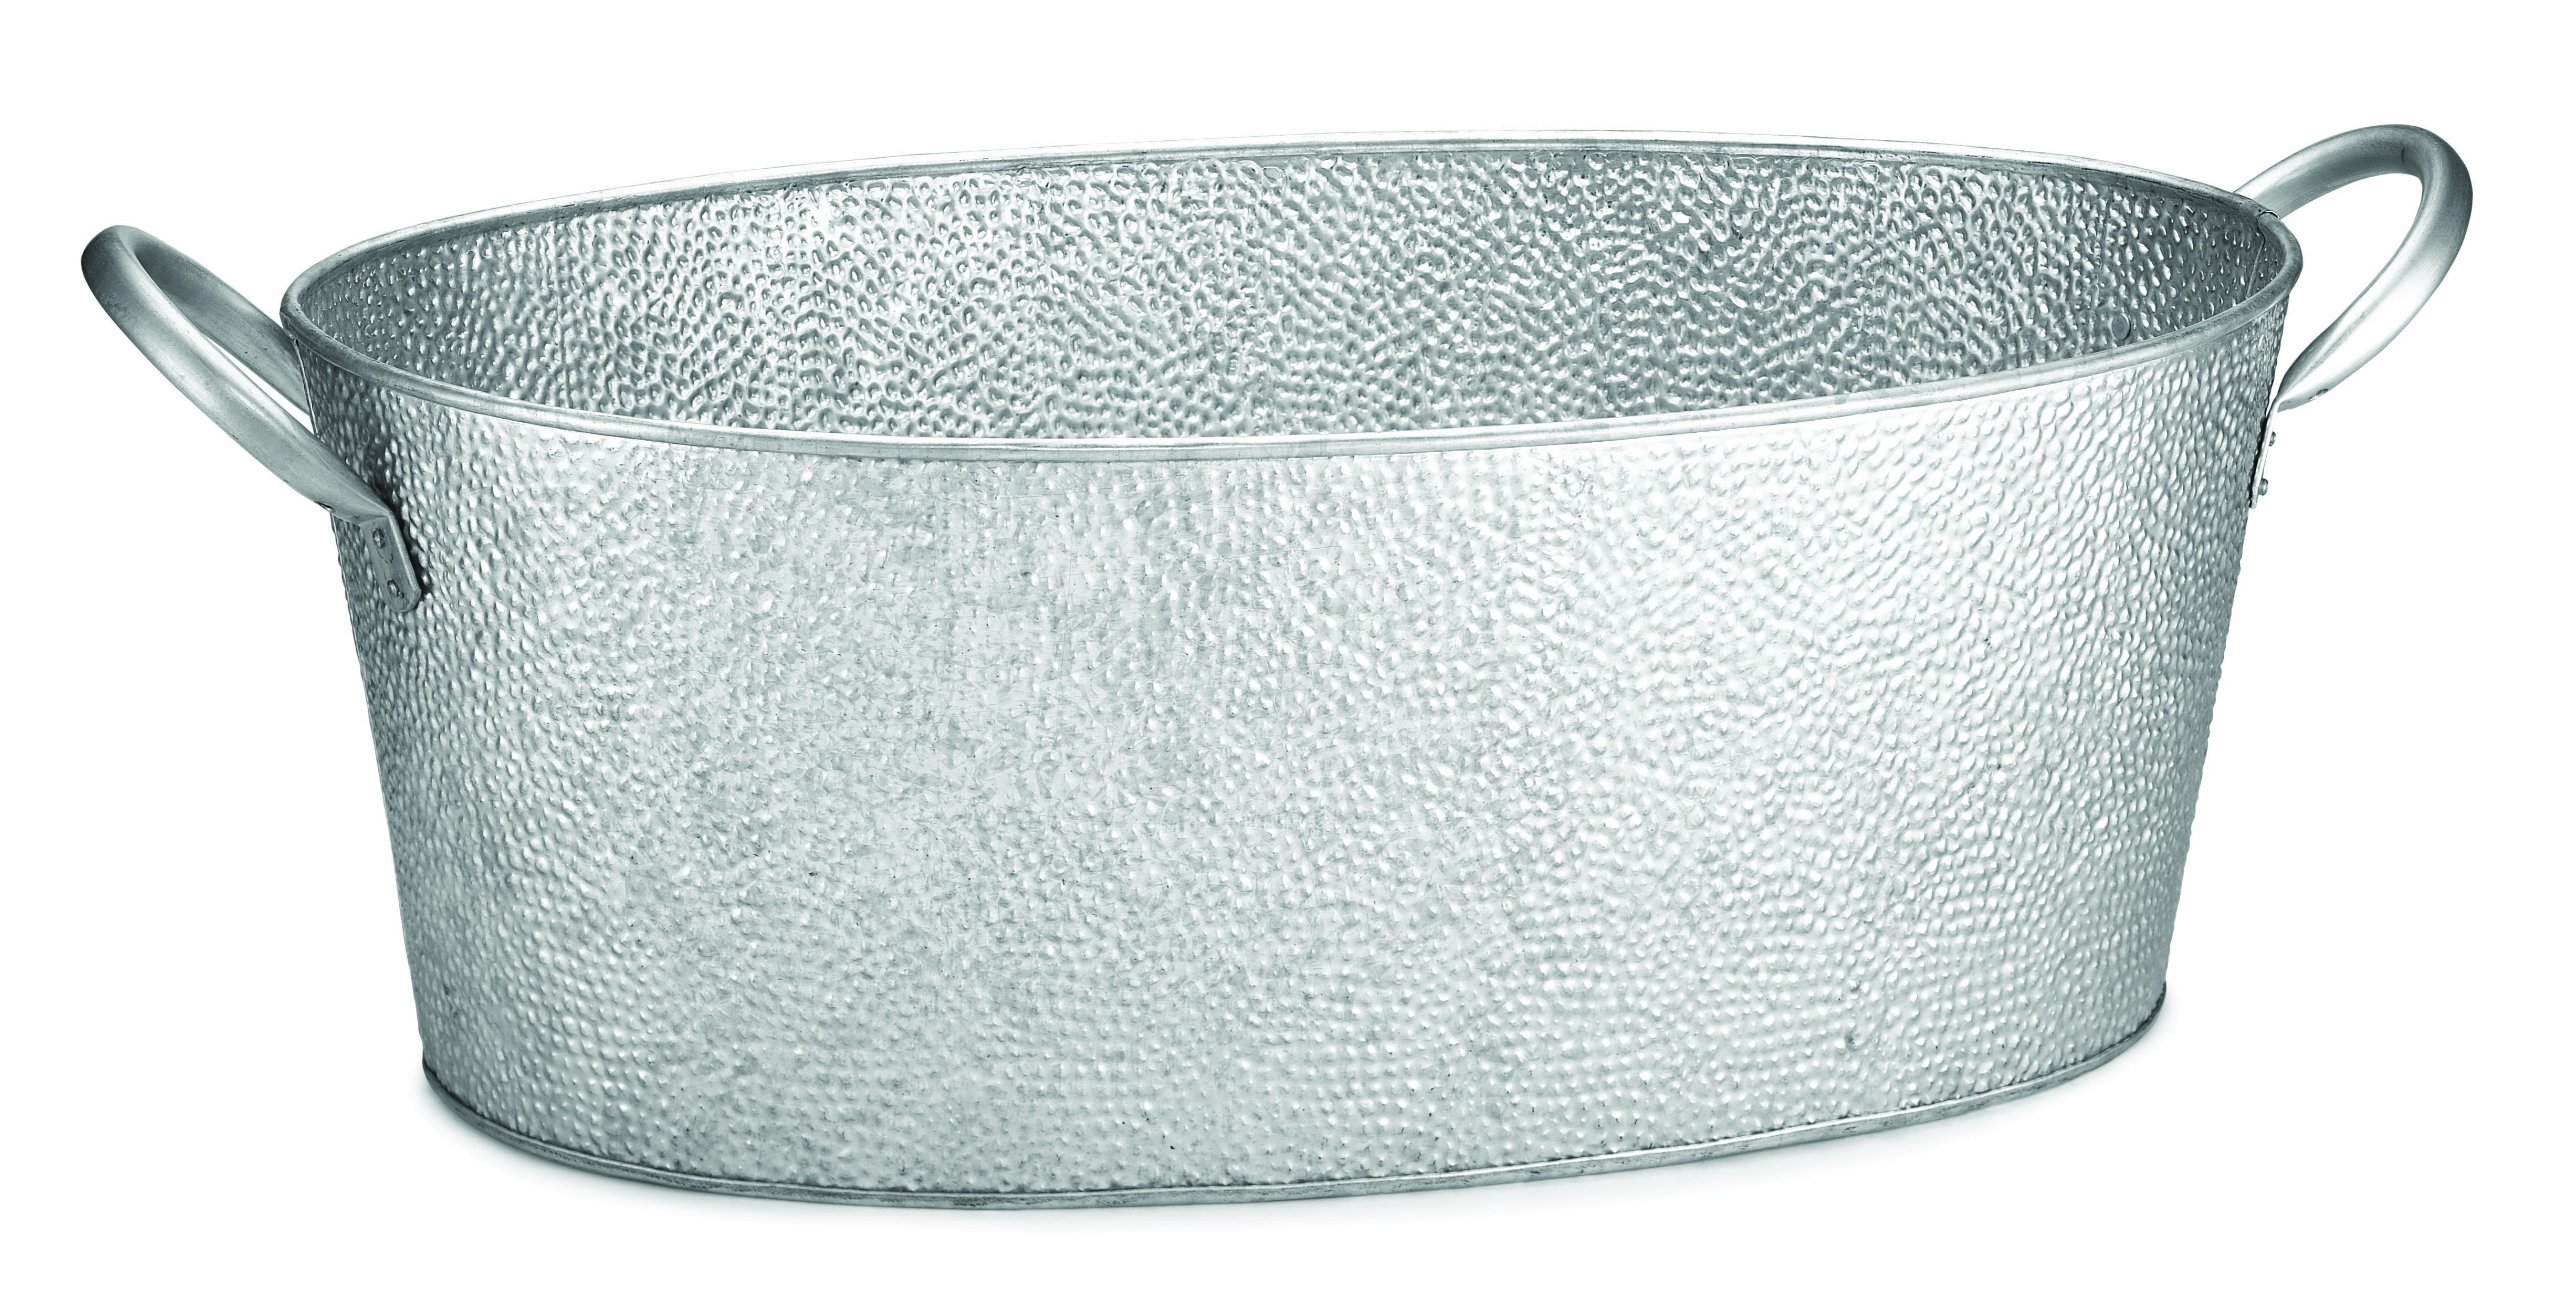 TableCraft GT2313 Oval Beverage Tub Galvanized Pebbled Texture, 22 3/4 x 12 1/2 x 7 3/8-Inch